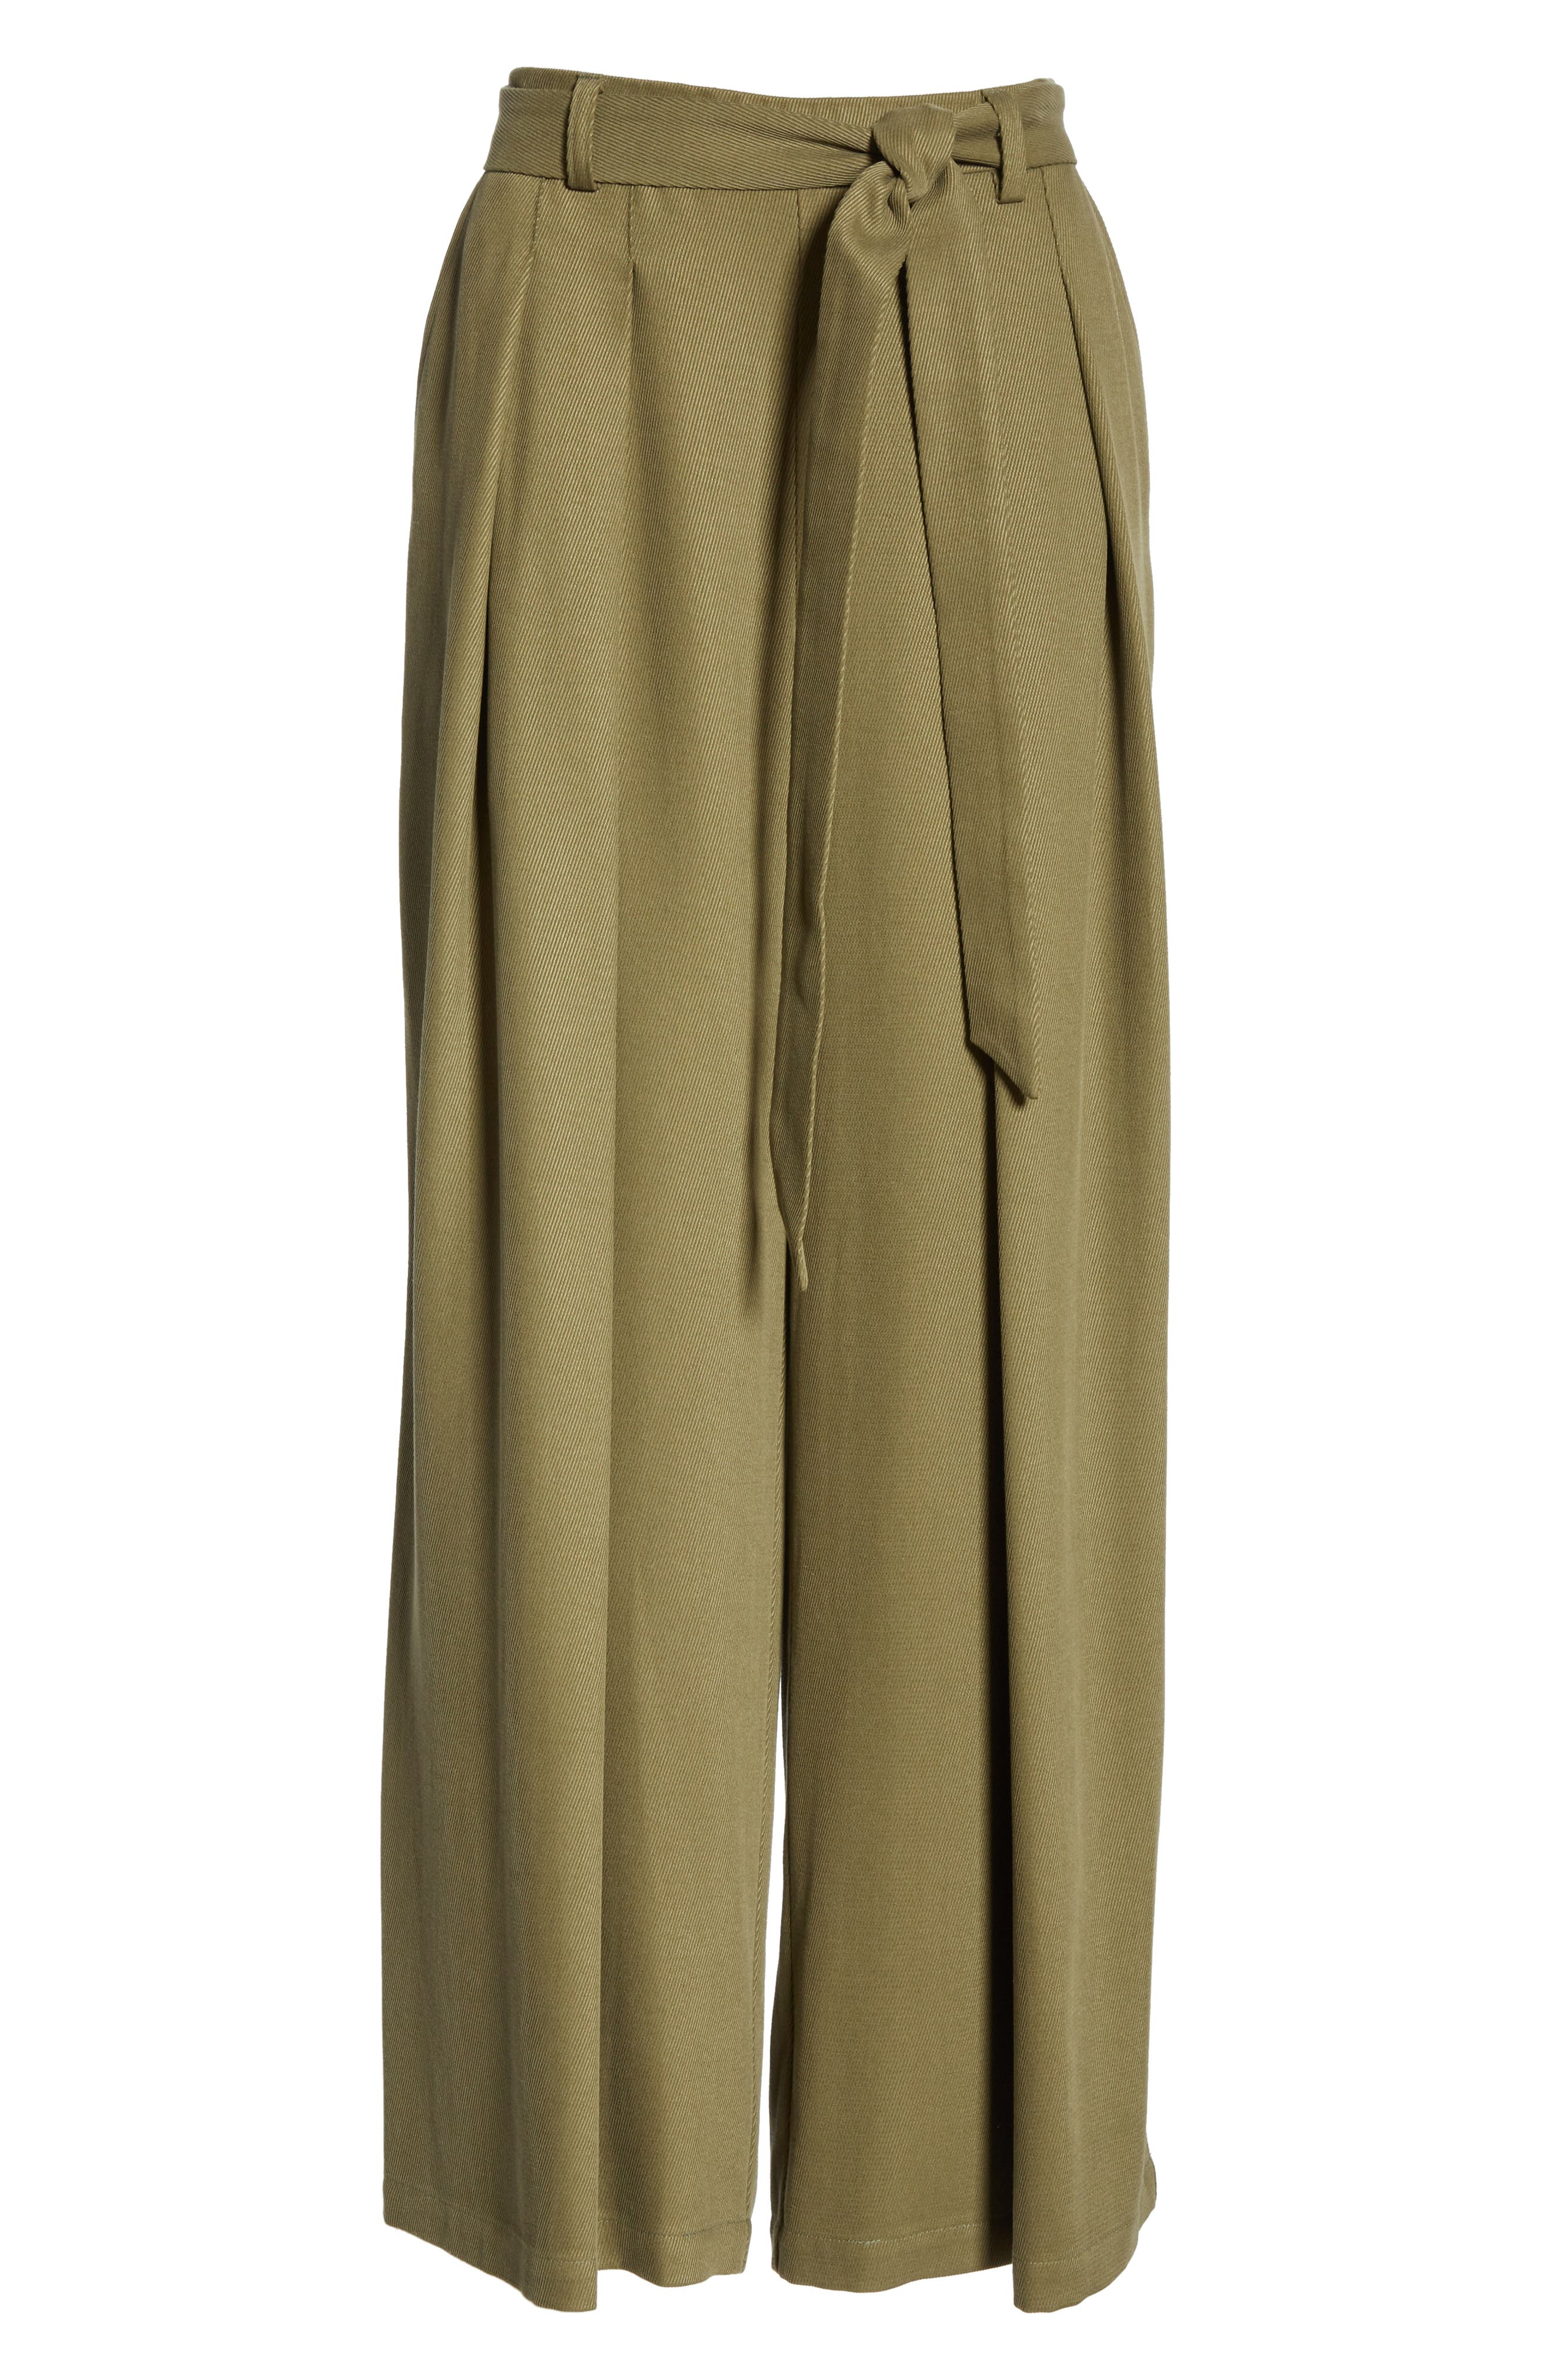 EILEEN FISHER, Belted Wide Leg Pants, Alternate thumbnail 7, color, 301